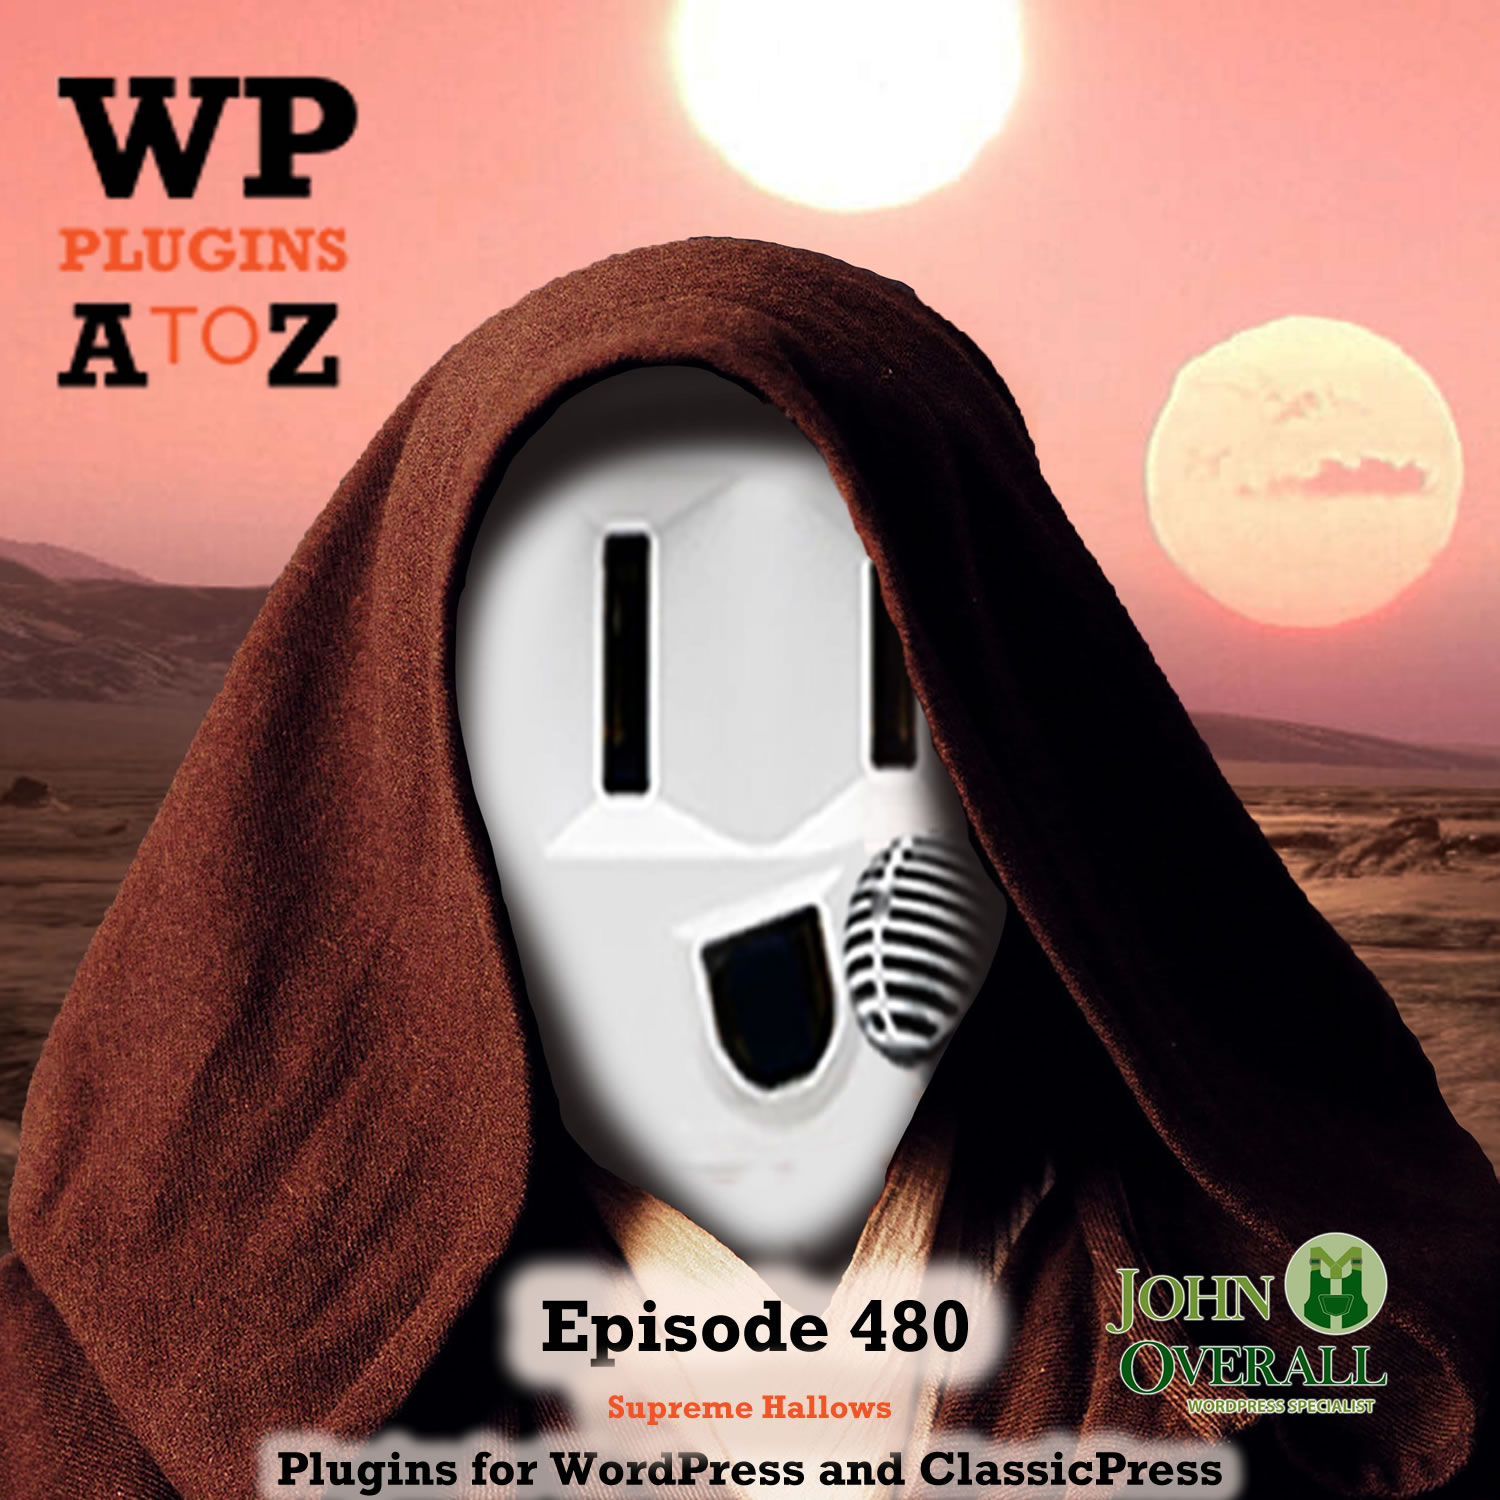 It's Episode 480 with plugins for Supreme Modules,Woo Hallows, Text Only, Relating Content, Notifications, Dispatching Files, and ClassicPress Options. It's all coming up on WordPress Plugins A-Z! WPFront Notification Bar, Contextual Related Posts, WP DISPATCHER, Supreme Modules Lite – Divi Theme - Extra Theme and Divi Builder, Haloween Woocommerce, Keep Emoticons as Text and ClassicPress options in Episode 480.